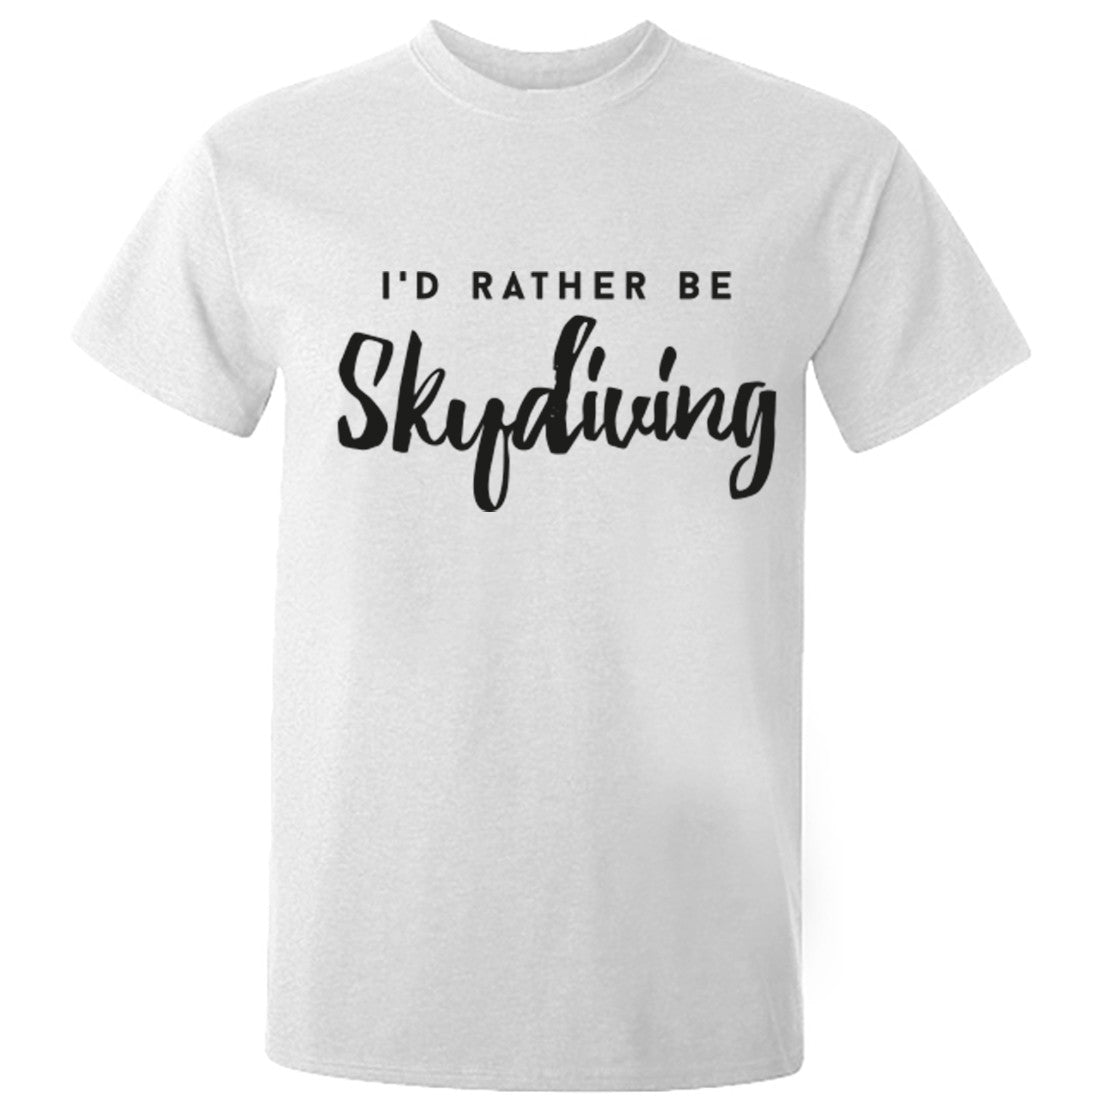 I'd rather be skydiving unisex t-shirt K0206